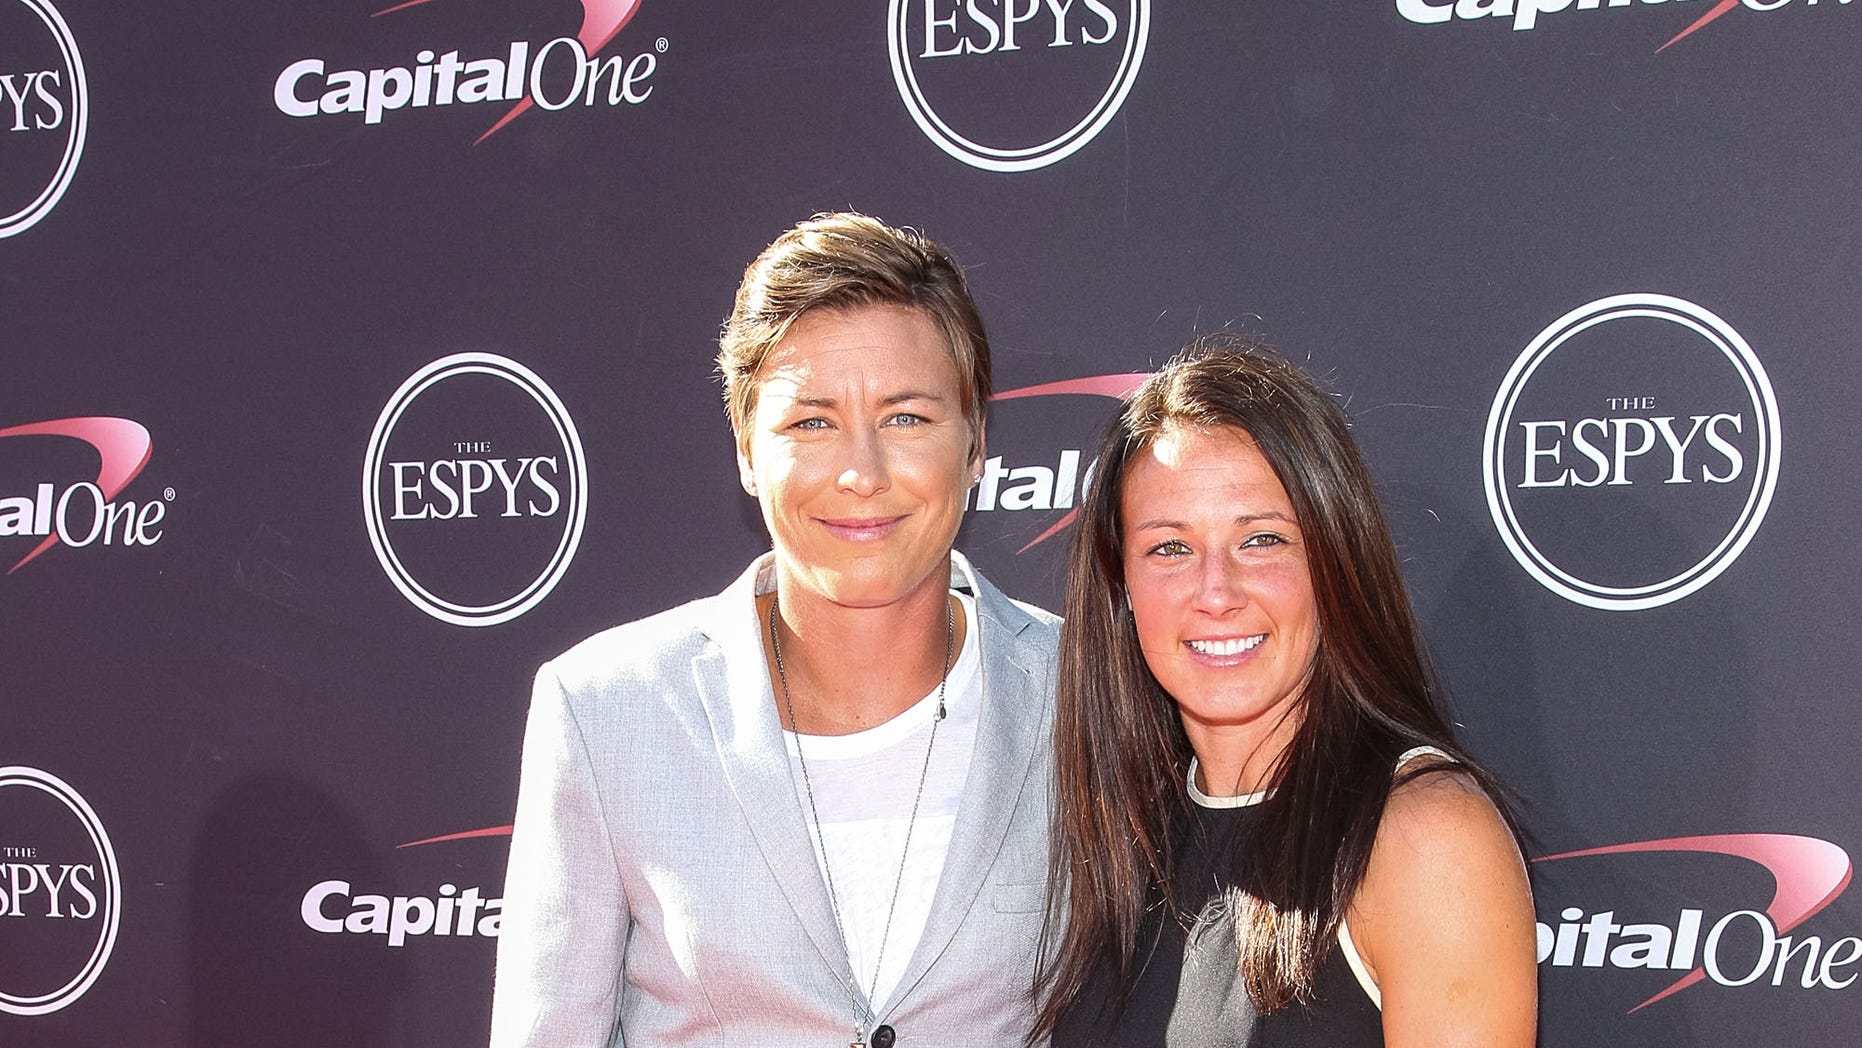 FILE - In this July 17, 2013, file photo, soccer players Abby Wambach, left, and Sarah Huffman arrive for the ESPY Awards in Los Angeles. Wambach's marriage to partner and professional teammate Sarah Huffman instantly made her one of the highest-profile athletes in the national debate over same sex-marriage.  (AP Photo/Invision, Paul A. Hebert, File)